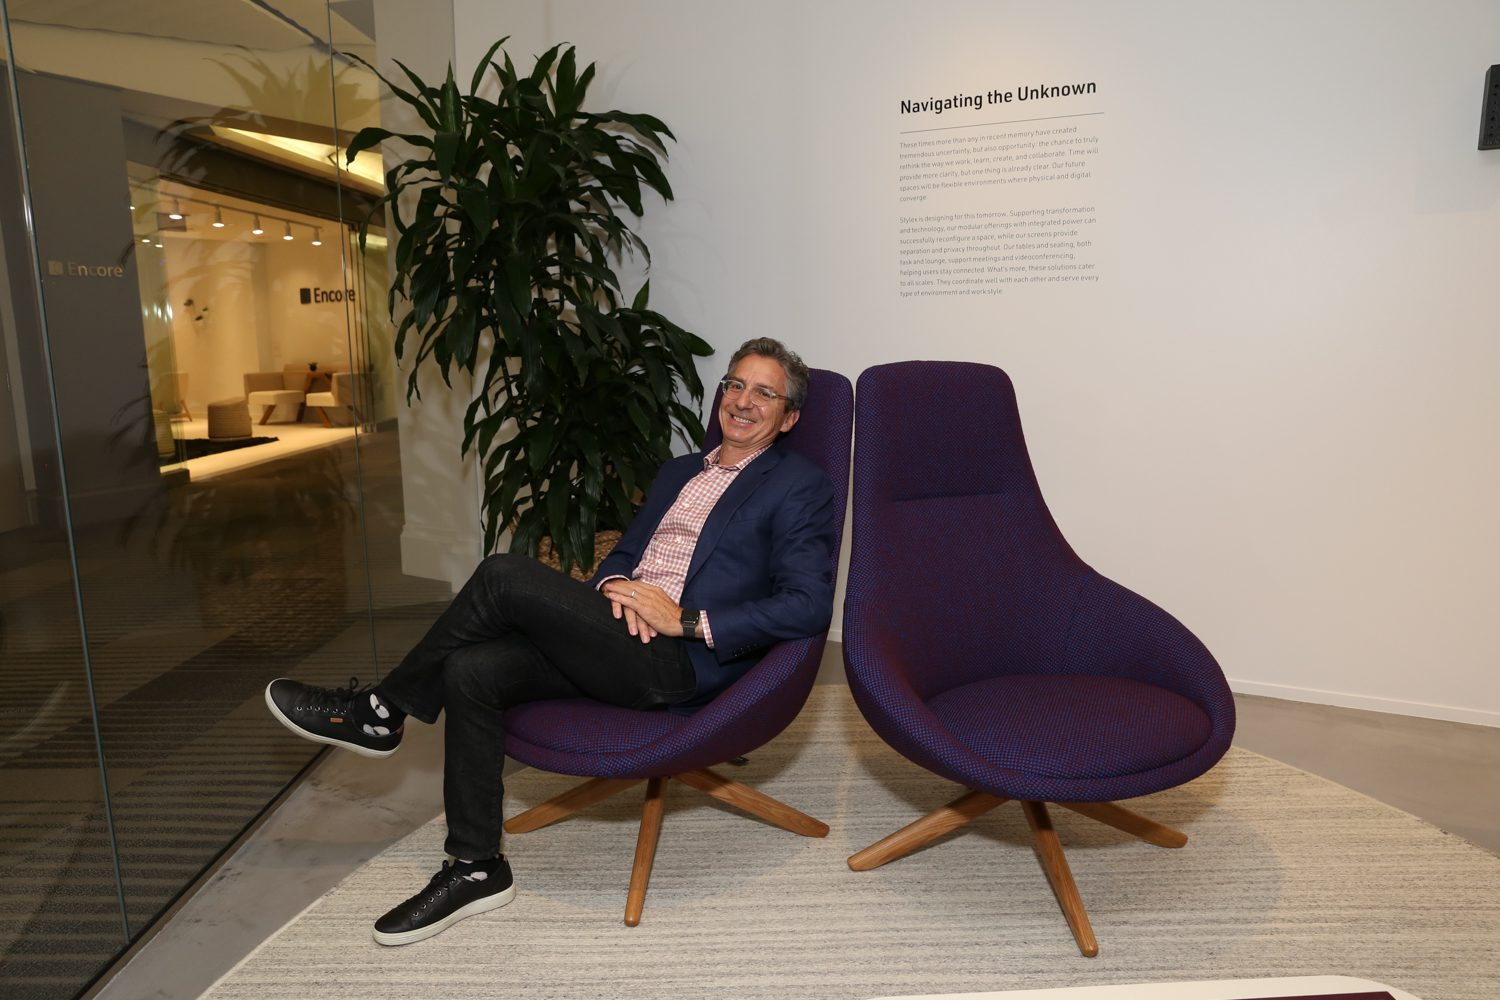 Bruce Golden, CEO, Stylex in the Cove chair.